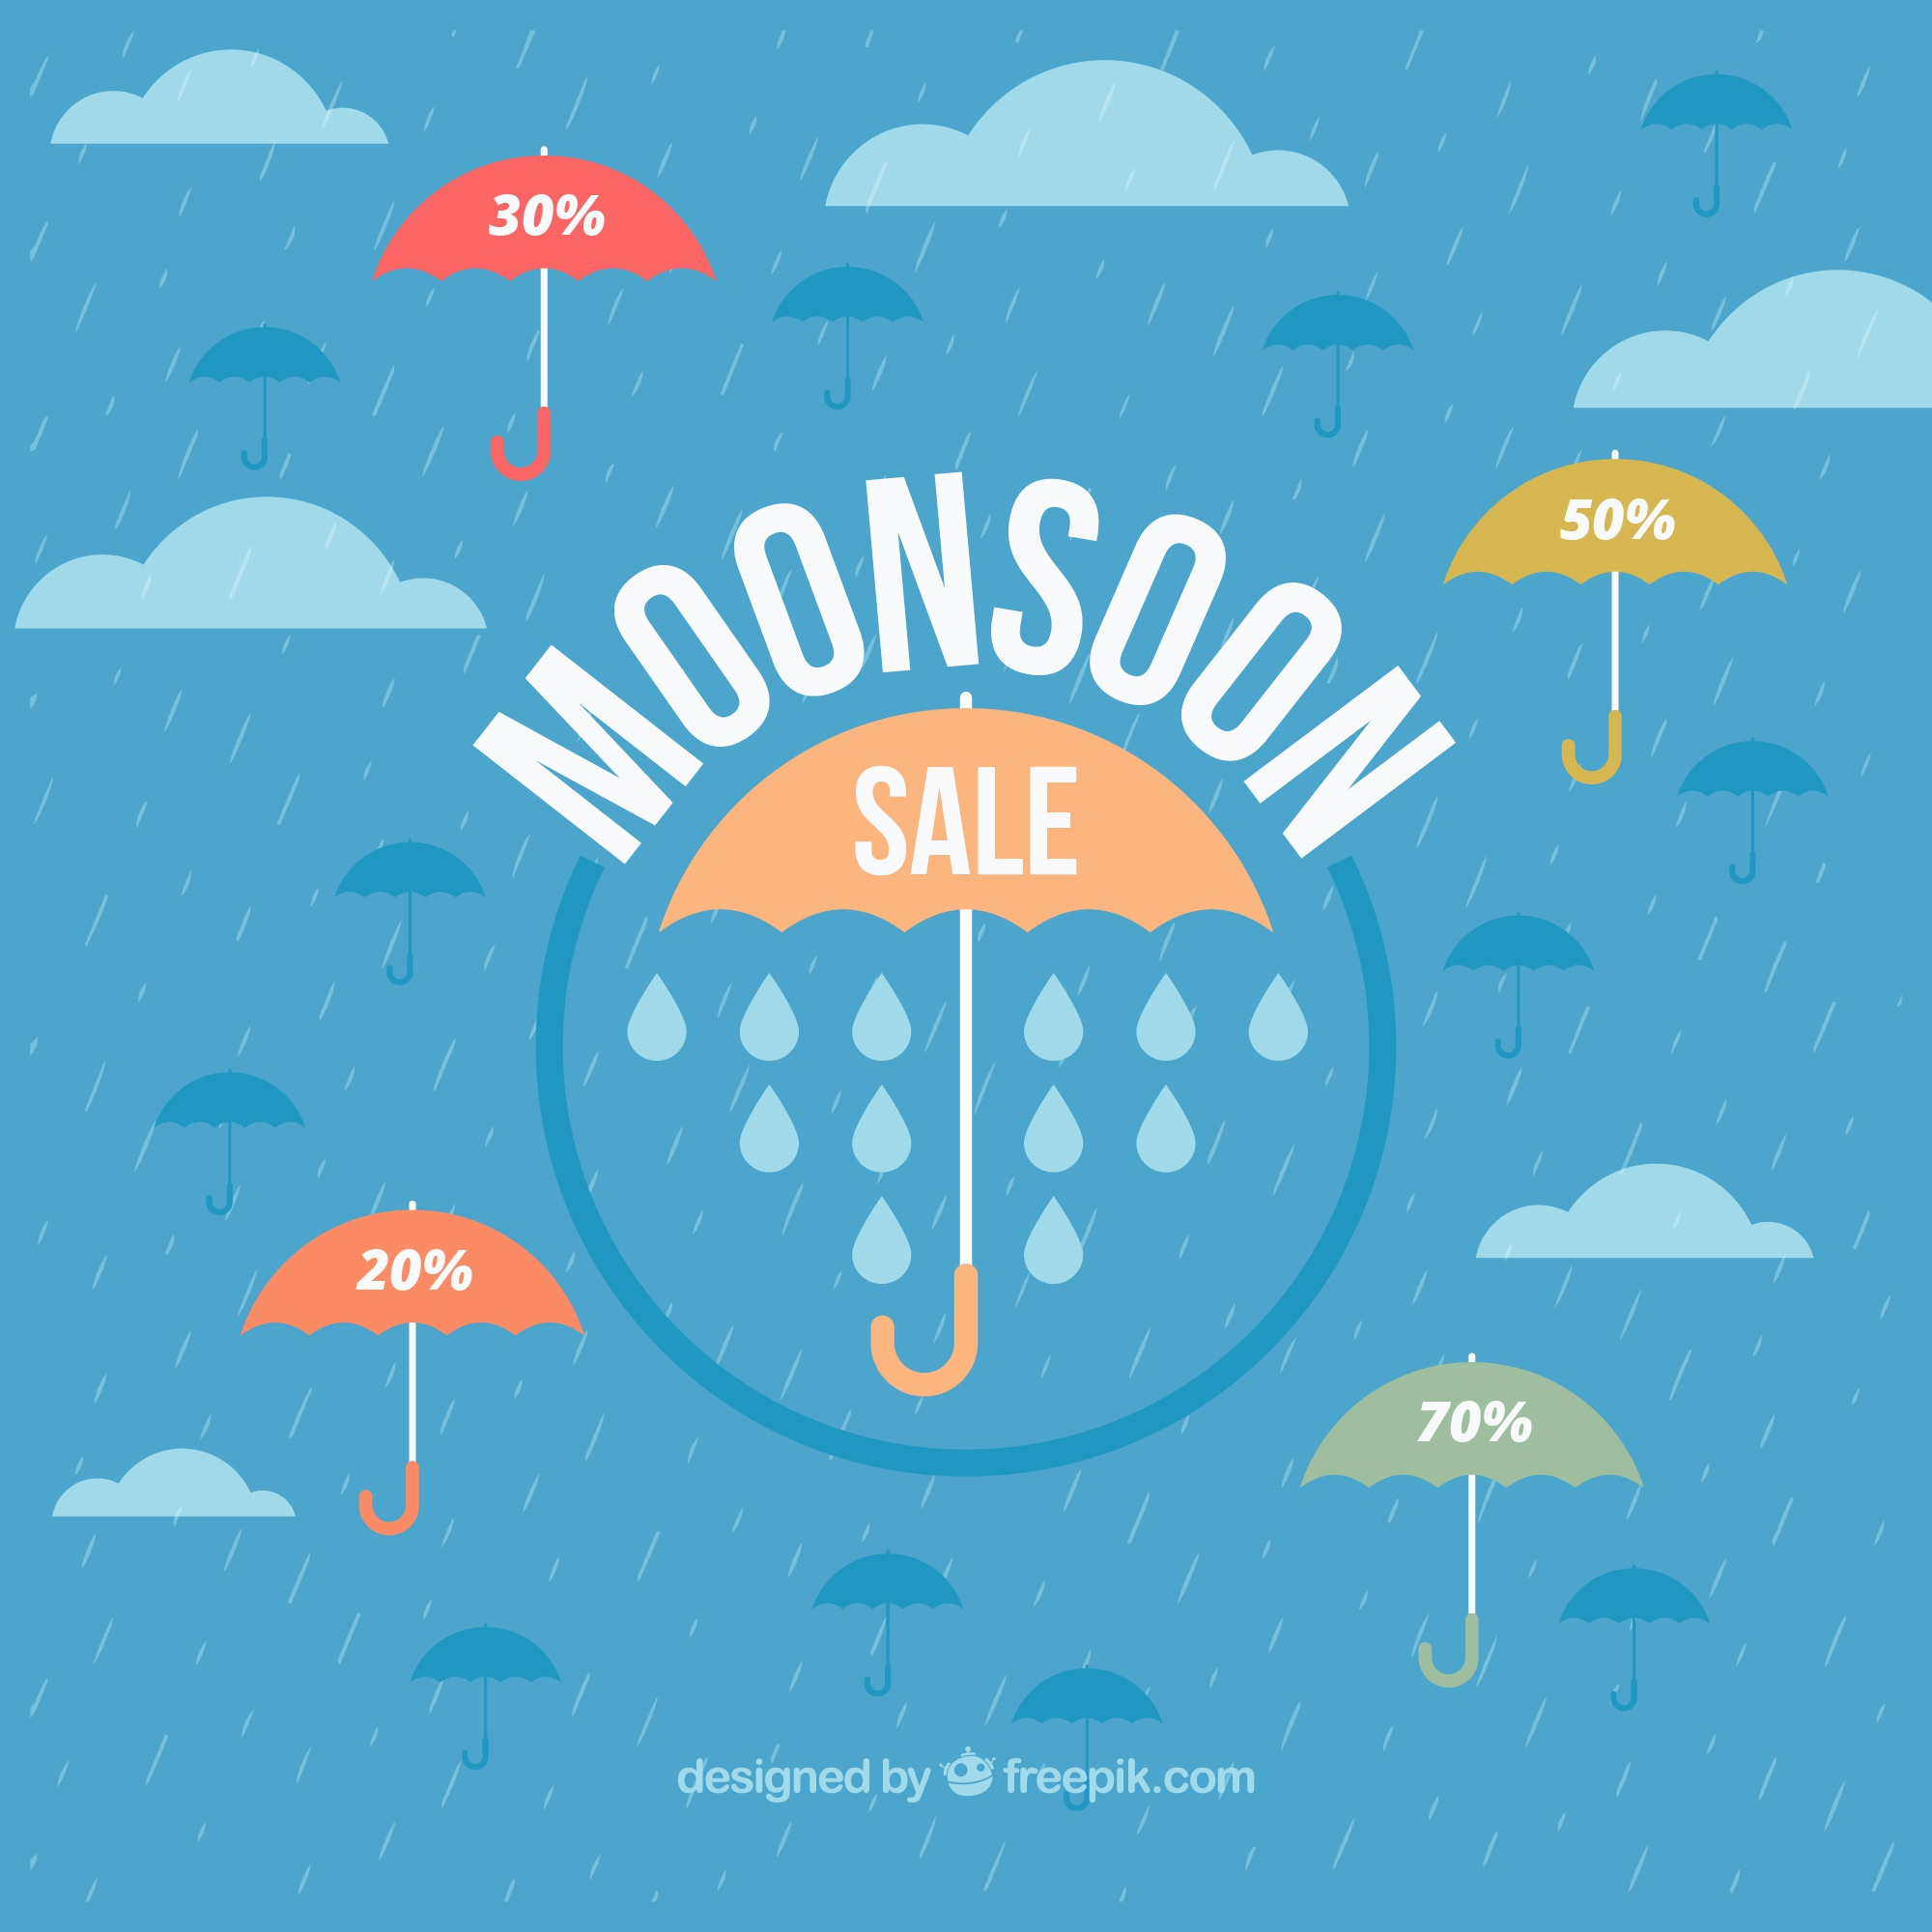 Monsoon sale background with umbrella in flat design